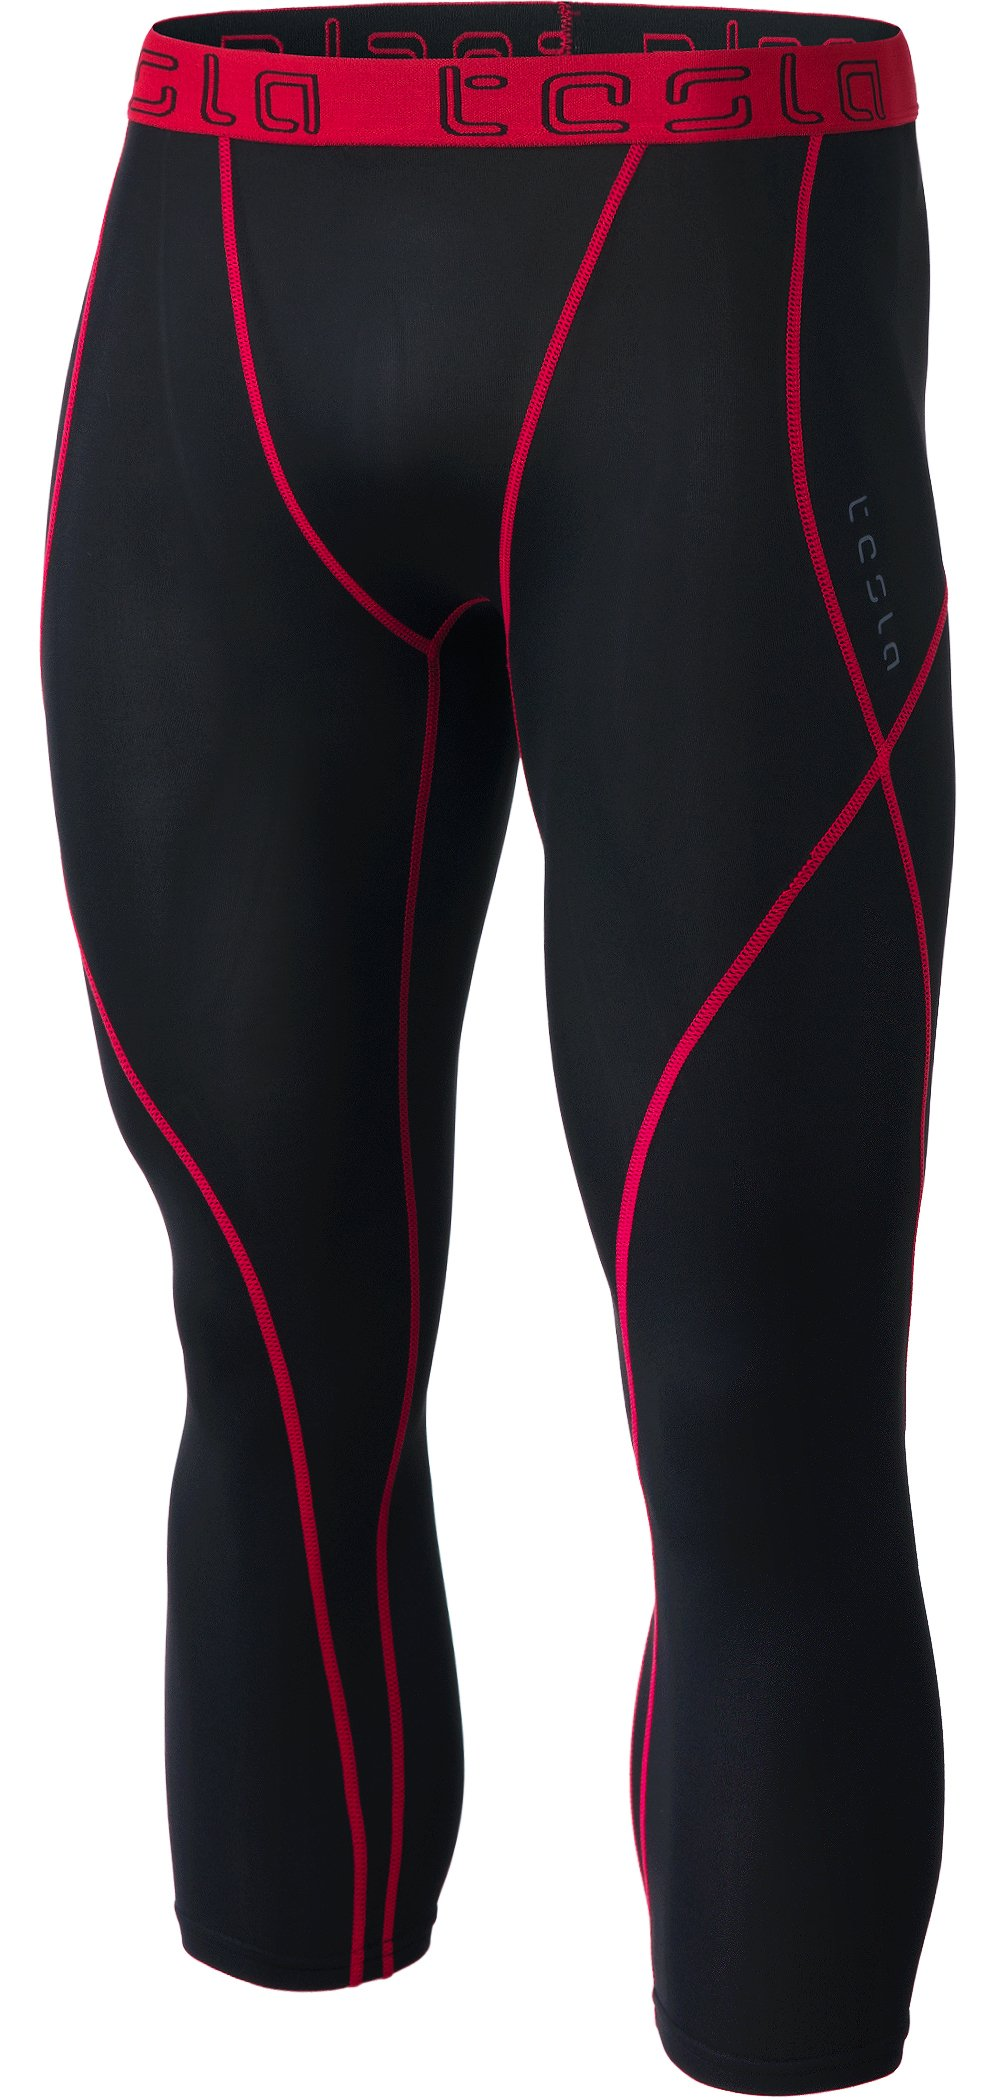 TM-MUC18-KKR_Large TSLA Men's Compression Capri Shorts Baselayer Cool Dry Sports Tights MUC18